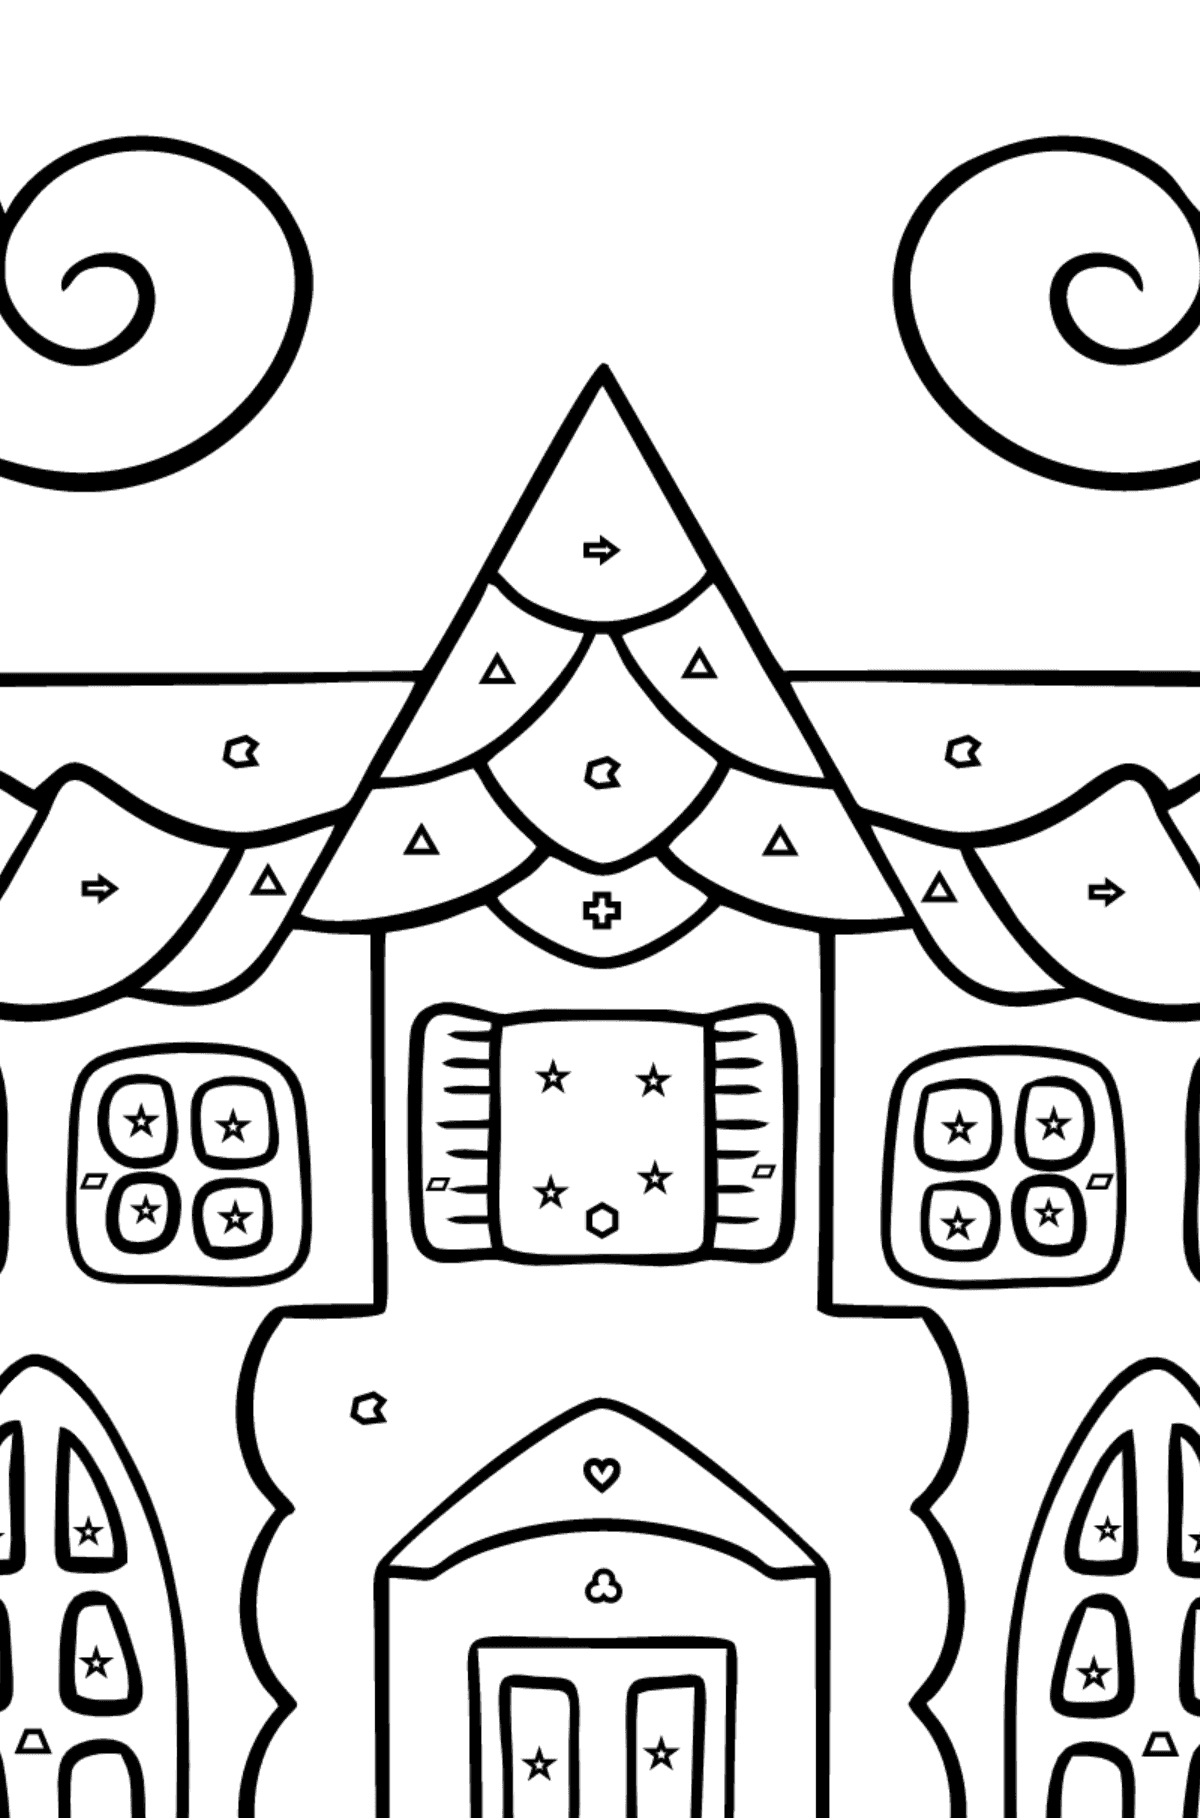 Complex Coloring Page - A House in an Enchanted Kingdom - Coloring by Geometric Shapes for Kids